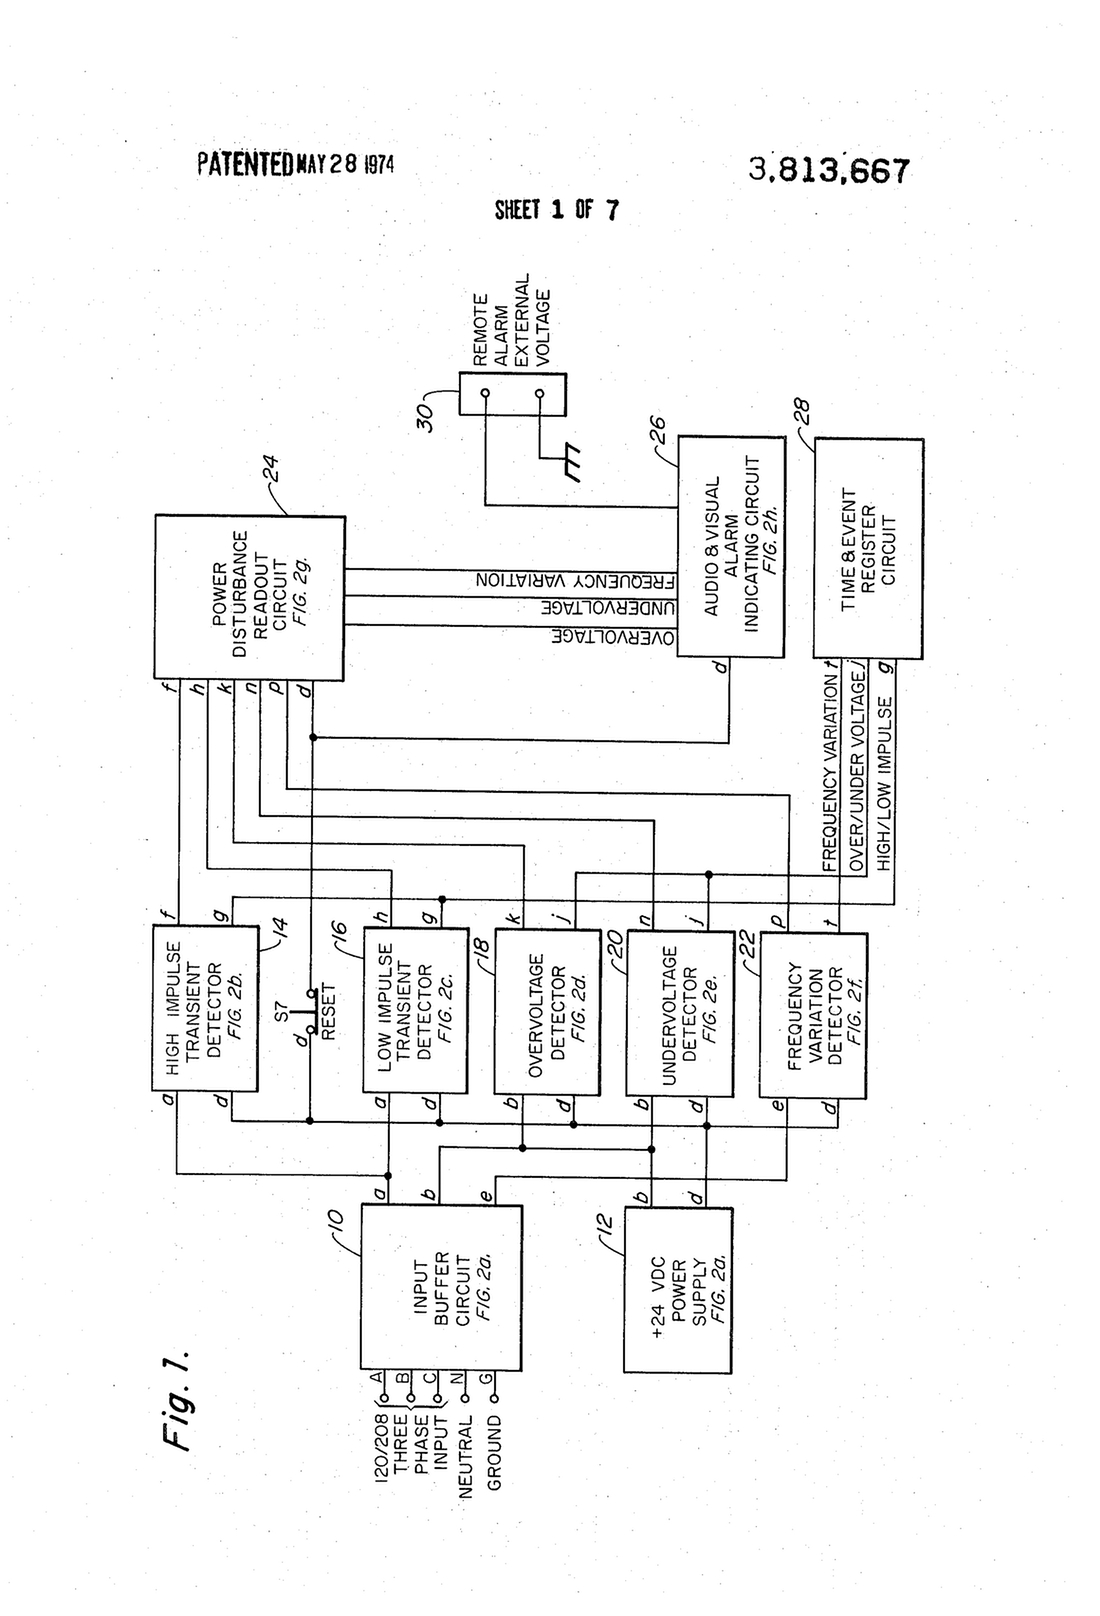 Get Auto Electrical Wiring Diagram Software Download